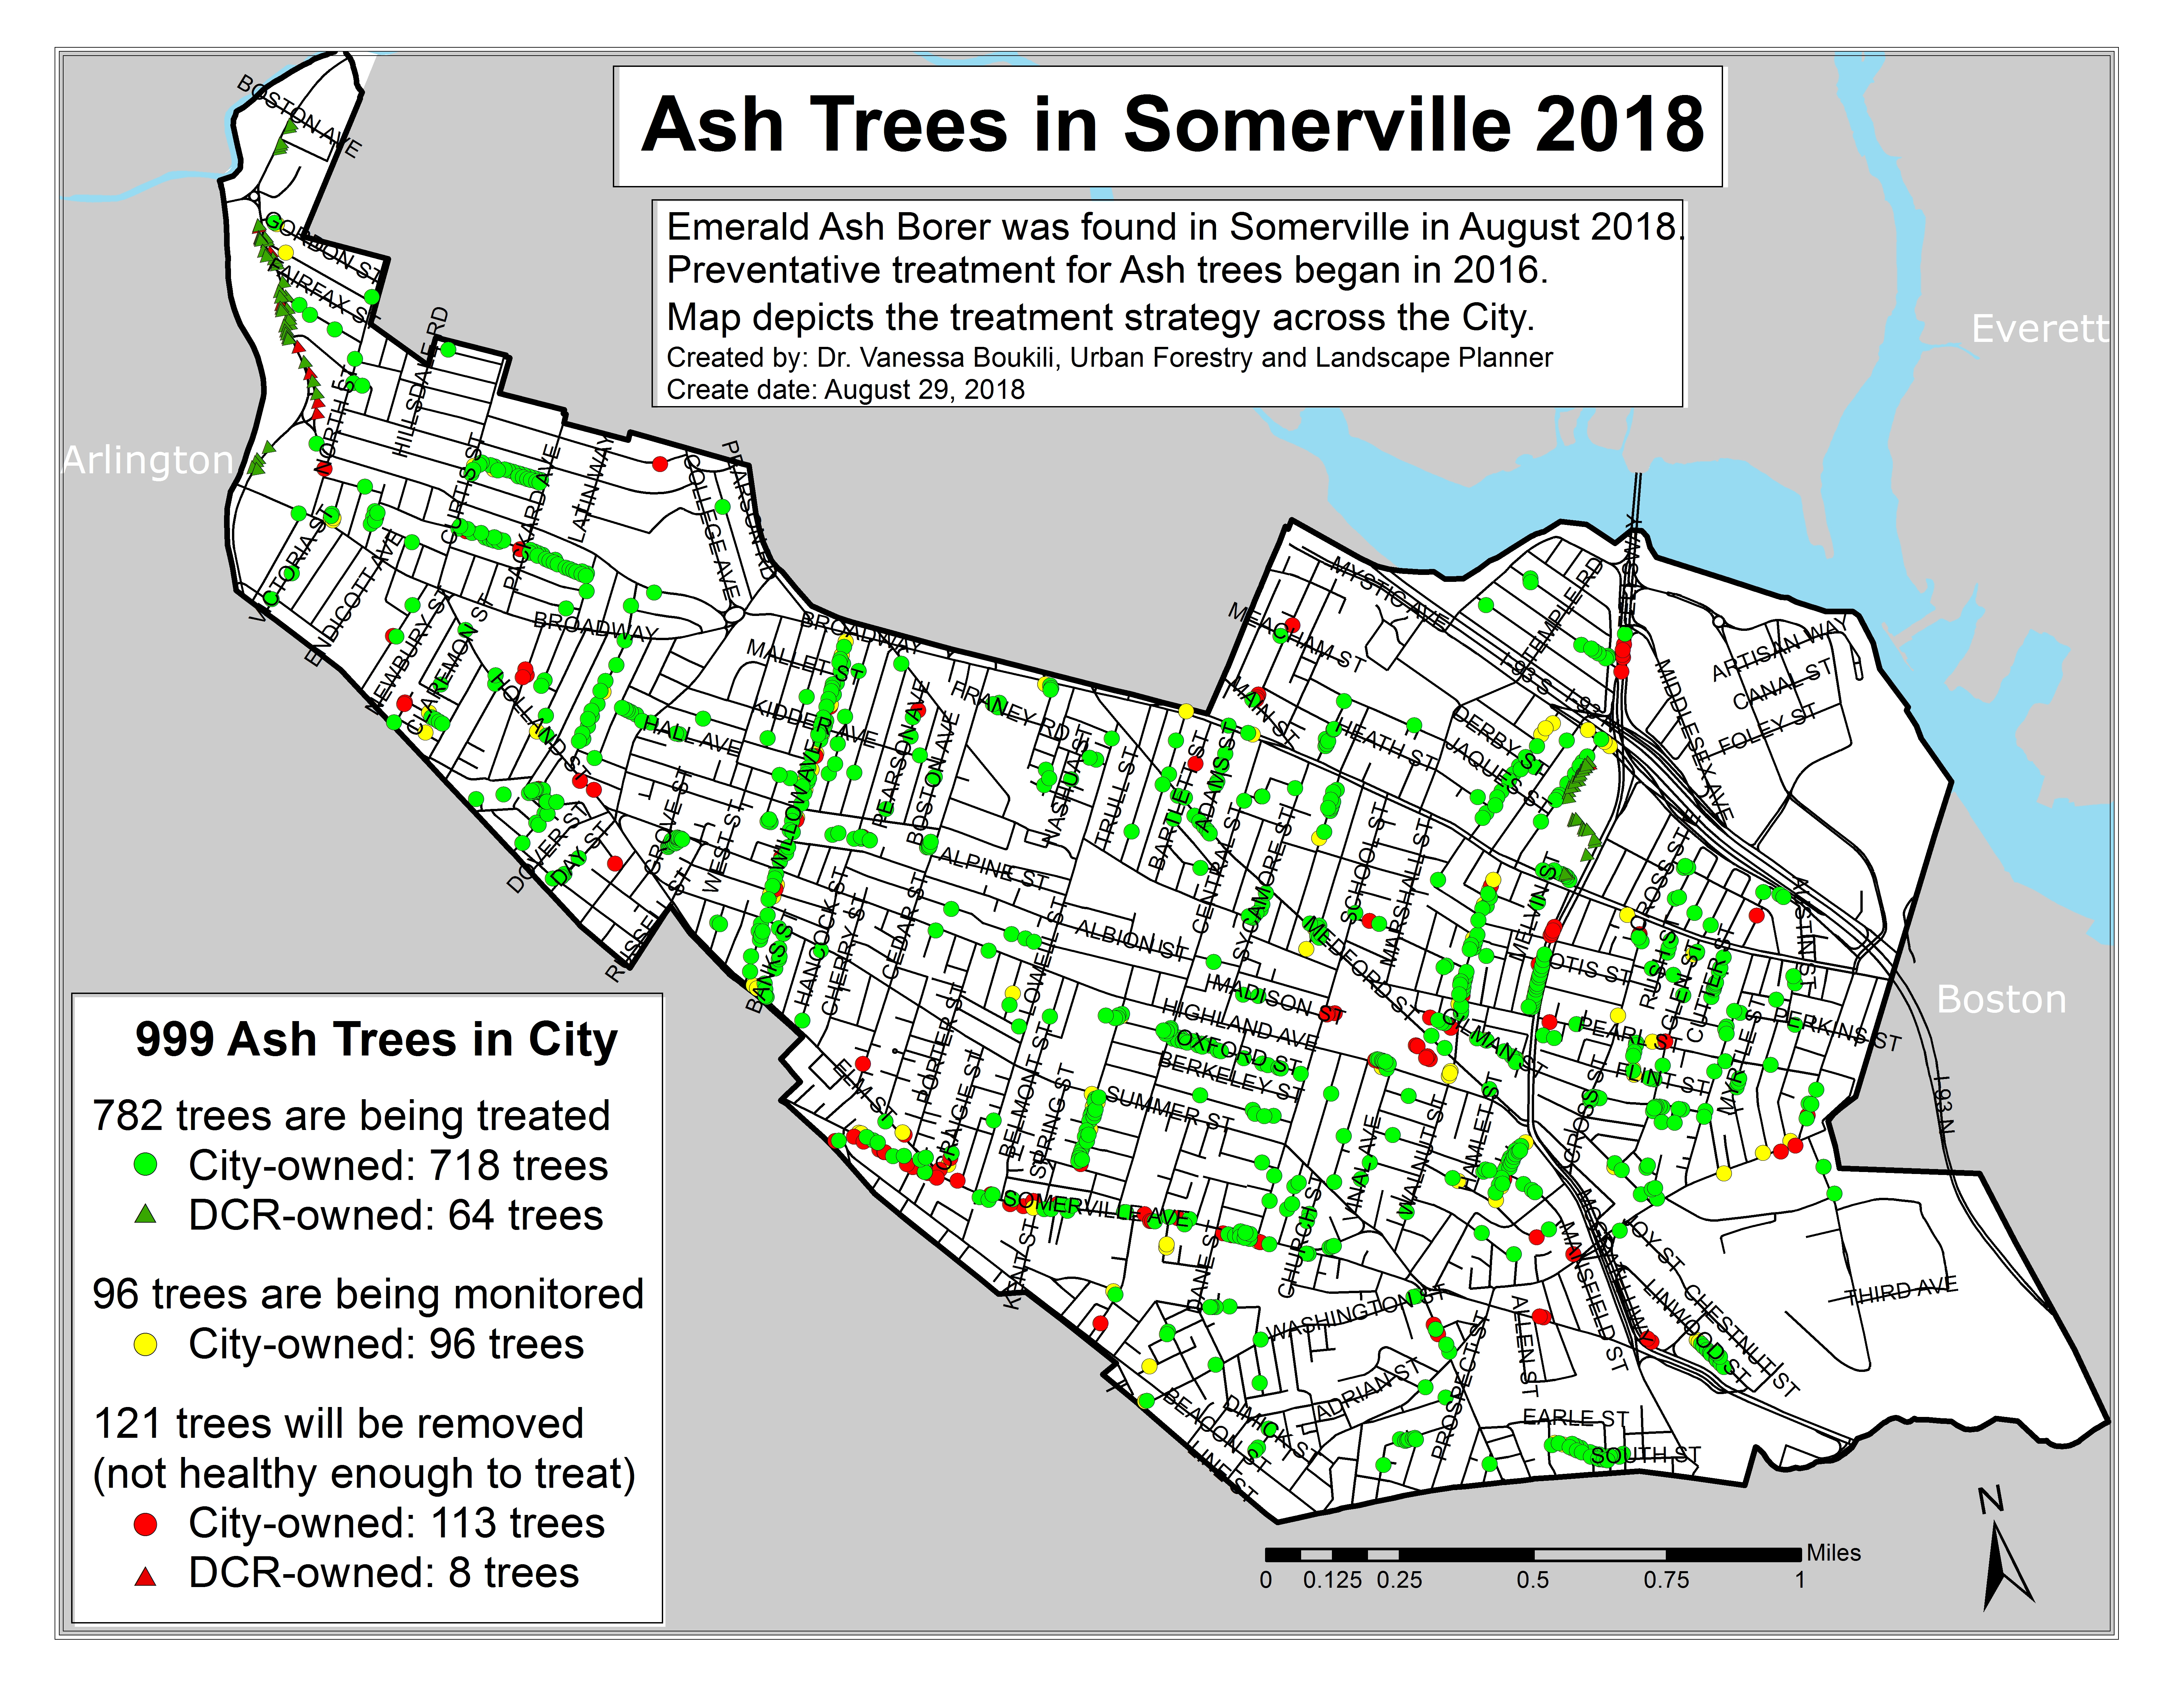 Of the 999 ash trees in the city, 782 are being treated, 96 are being monitored, and 121 are unhealthy and must be removed.